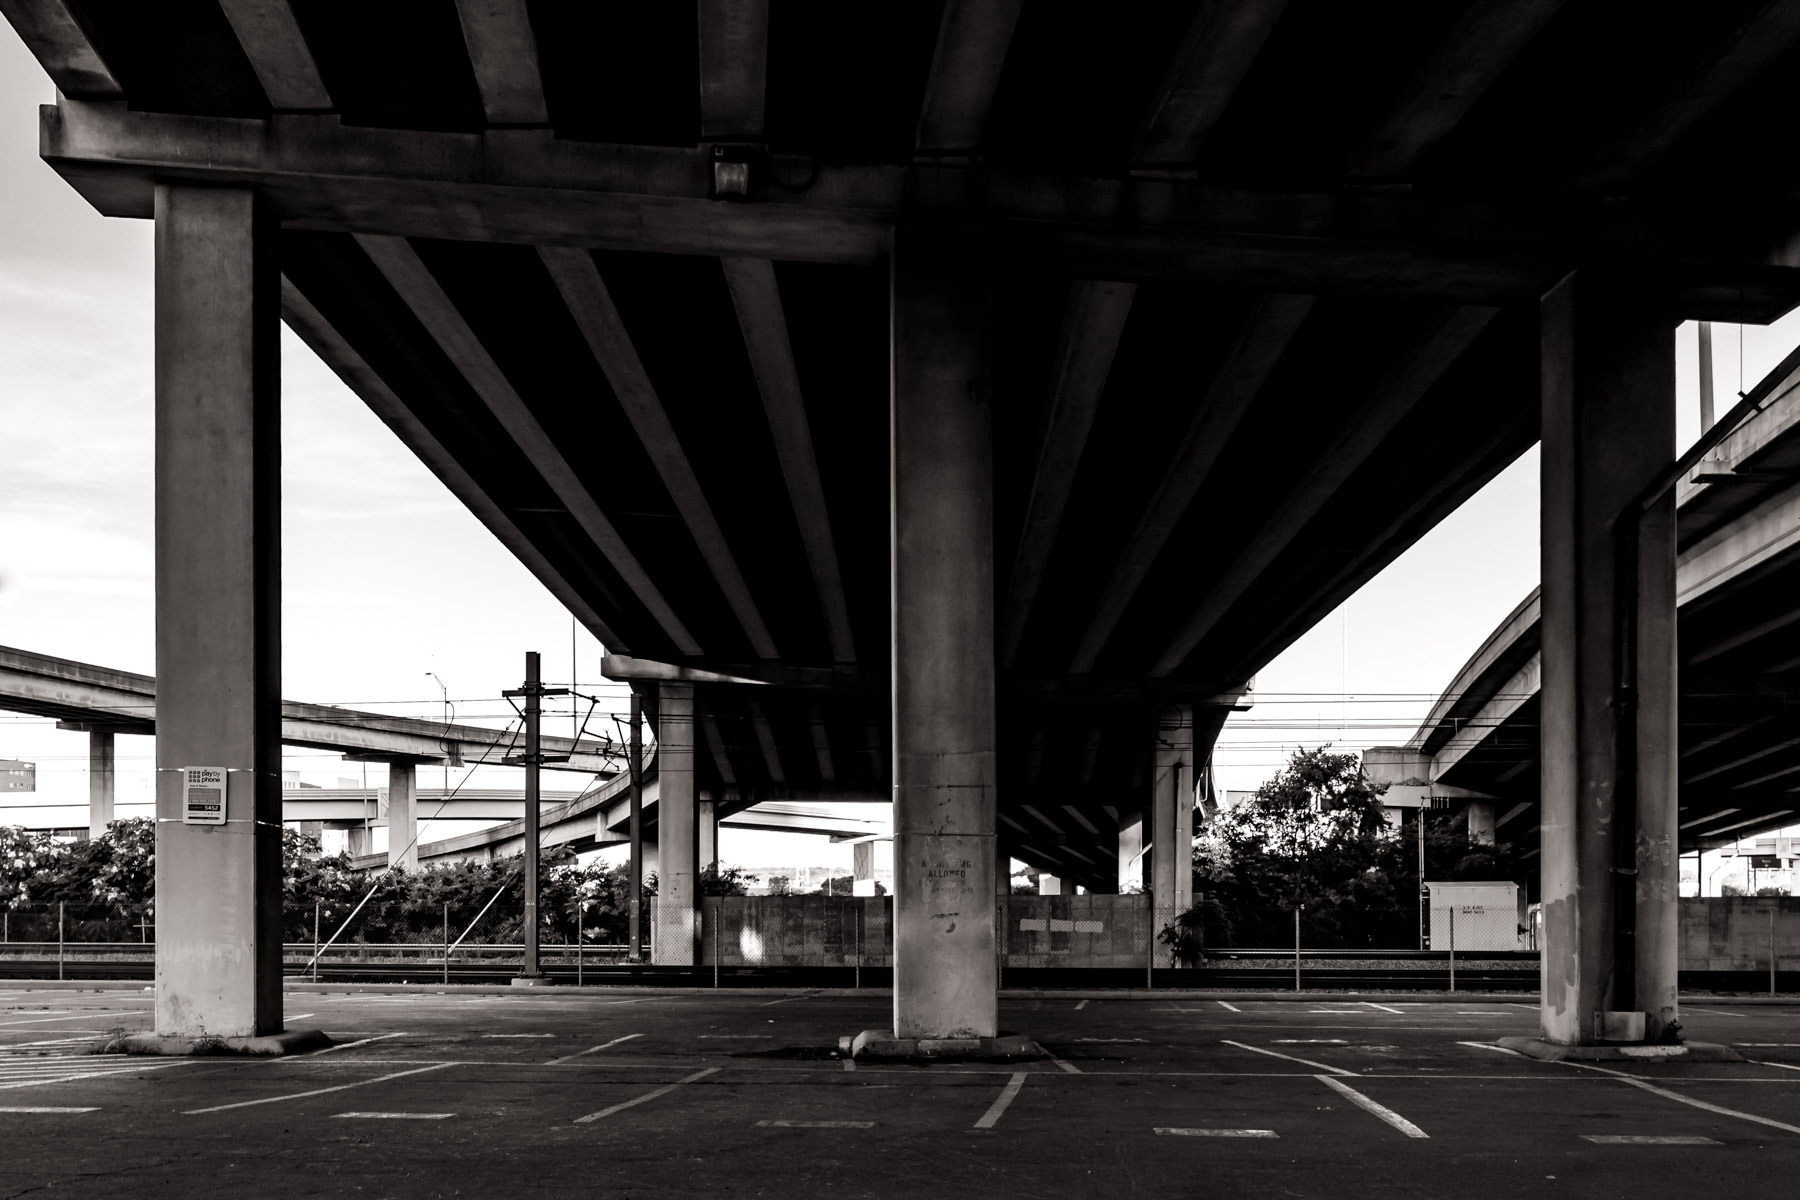 Support columns hold up the main lanes and a ramp of the Woodall Rogers Freeway, Dallas.